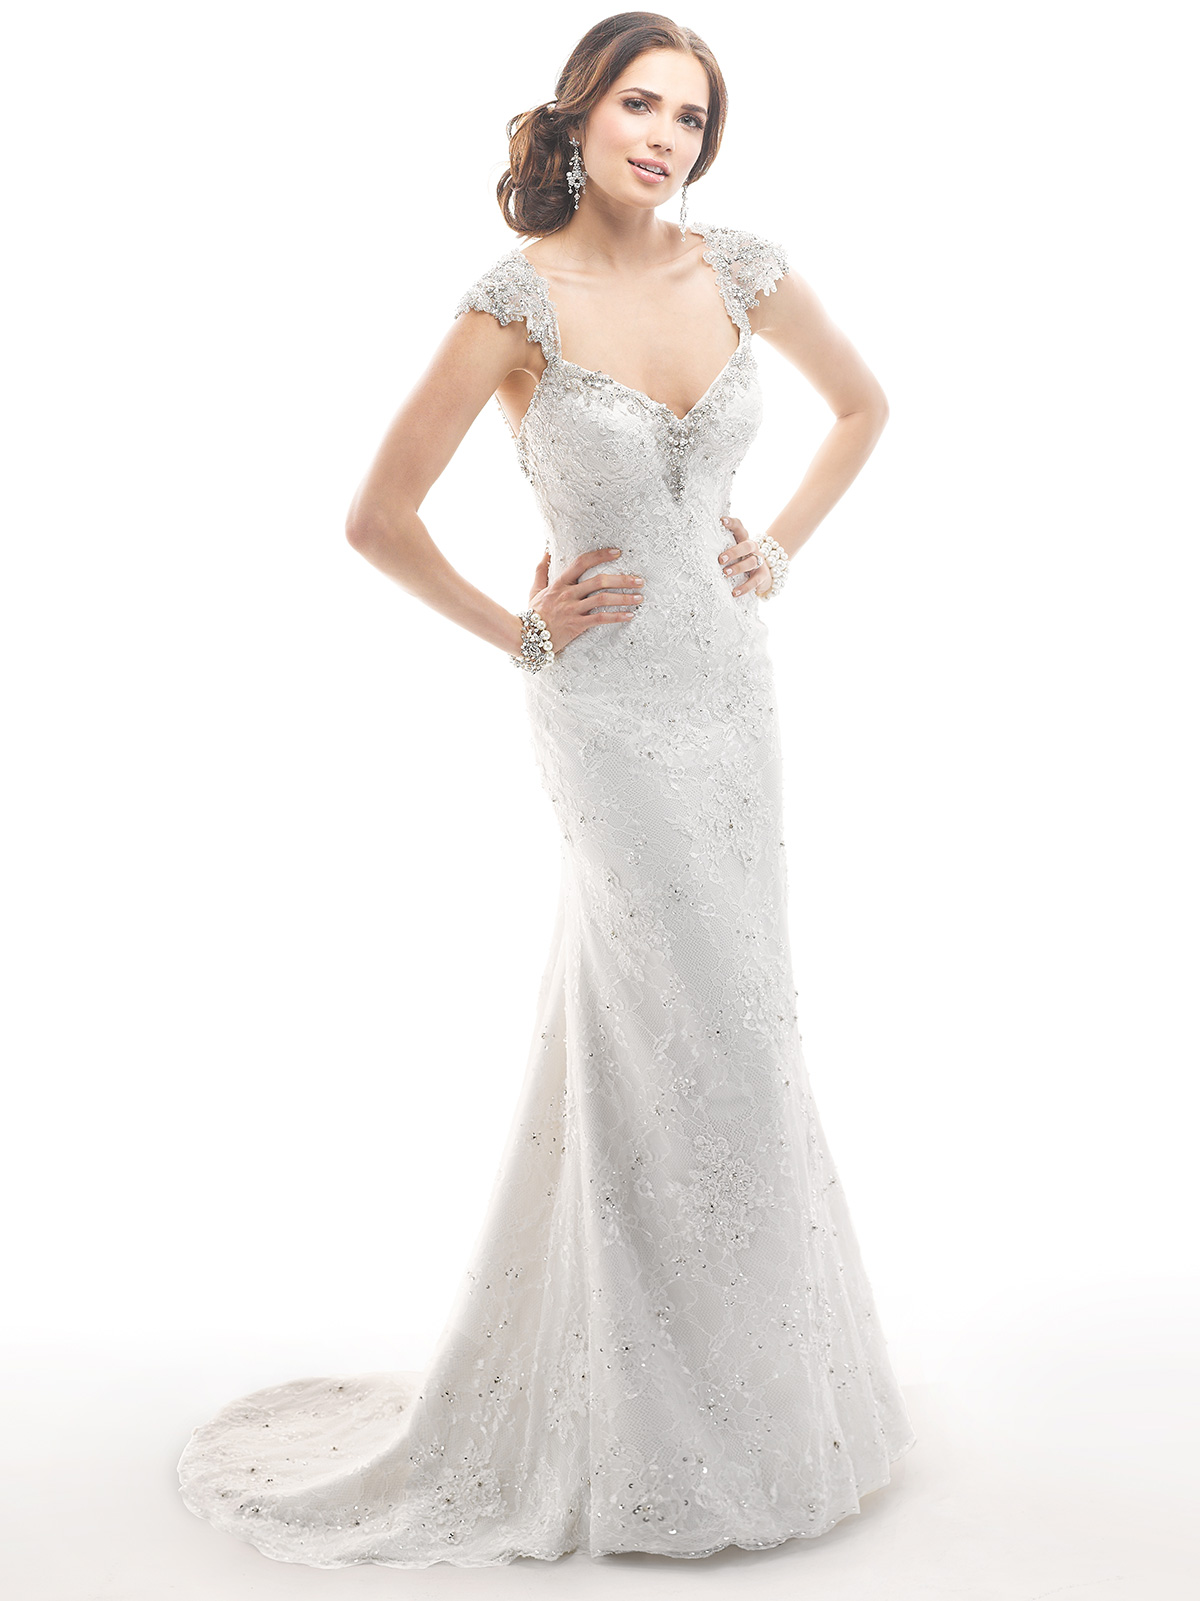 Janice Sung Wedding Cap Sleeves Beaded Bridal Gown Maggie Sottero Brandy